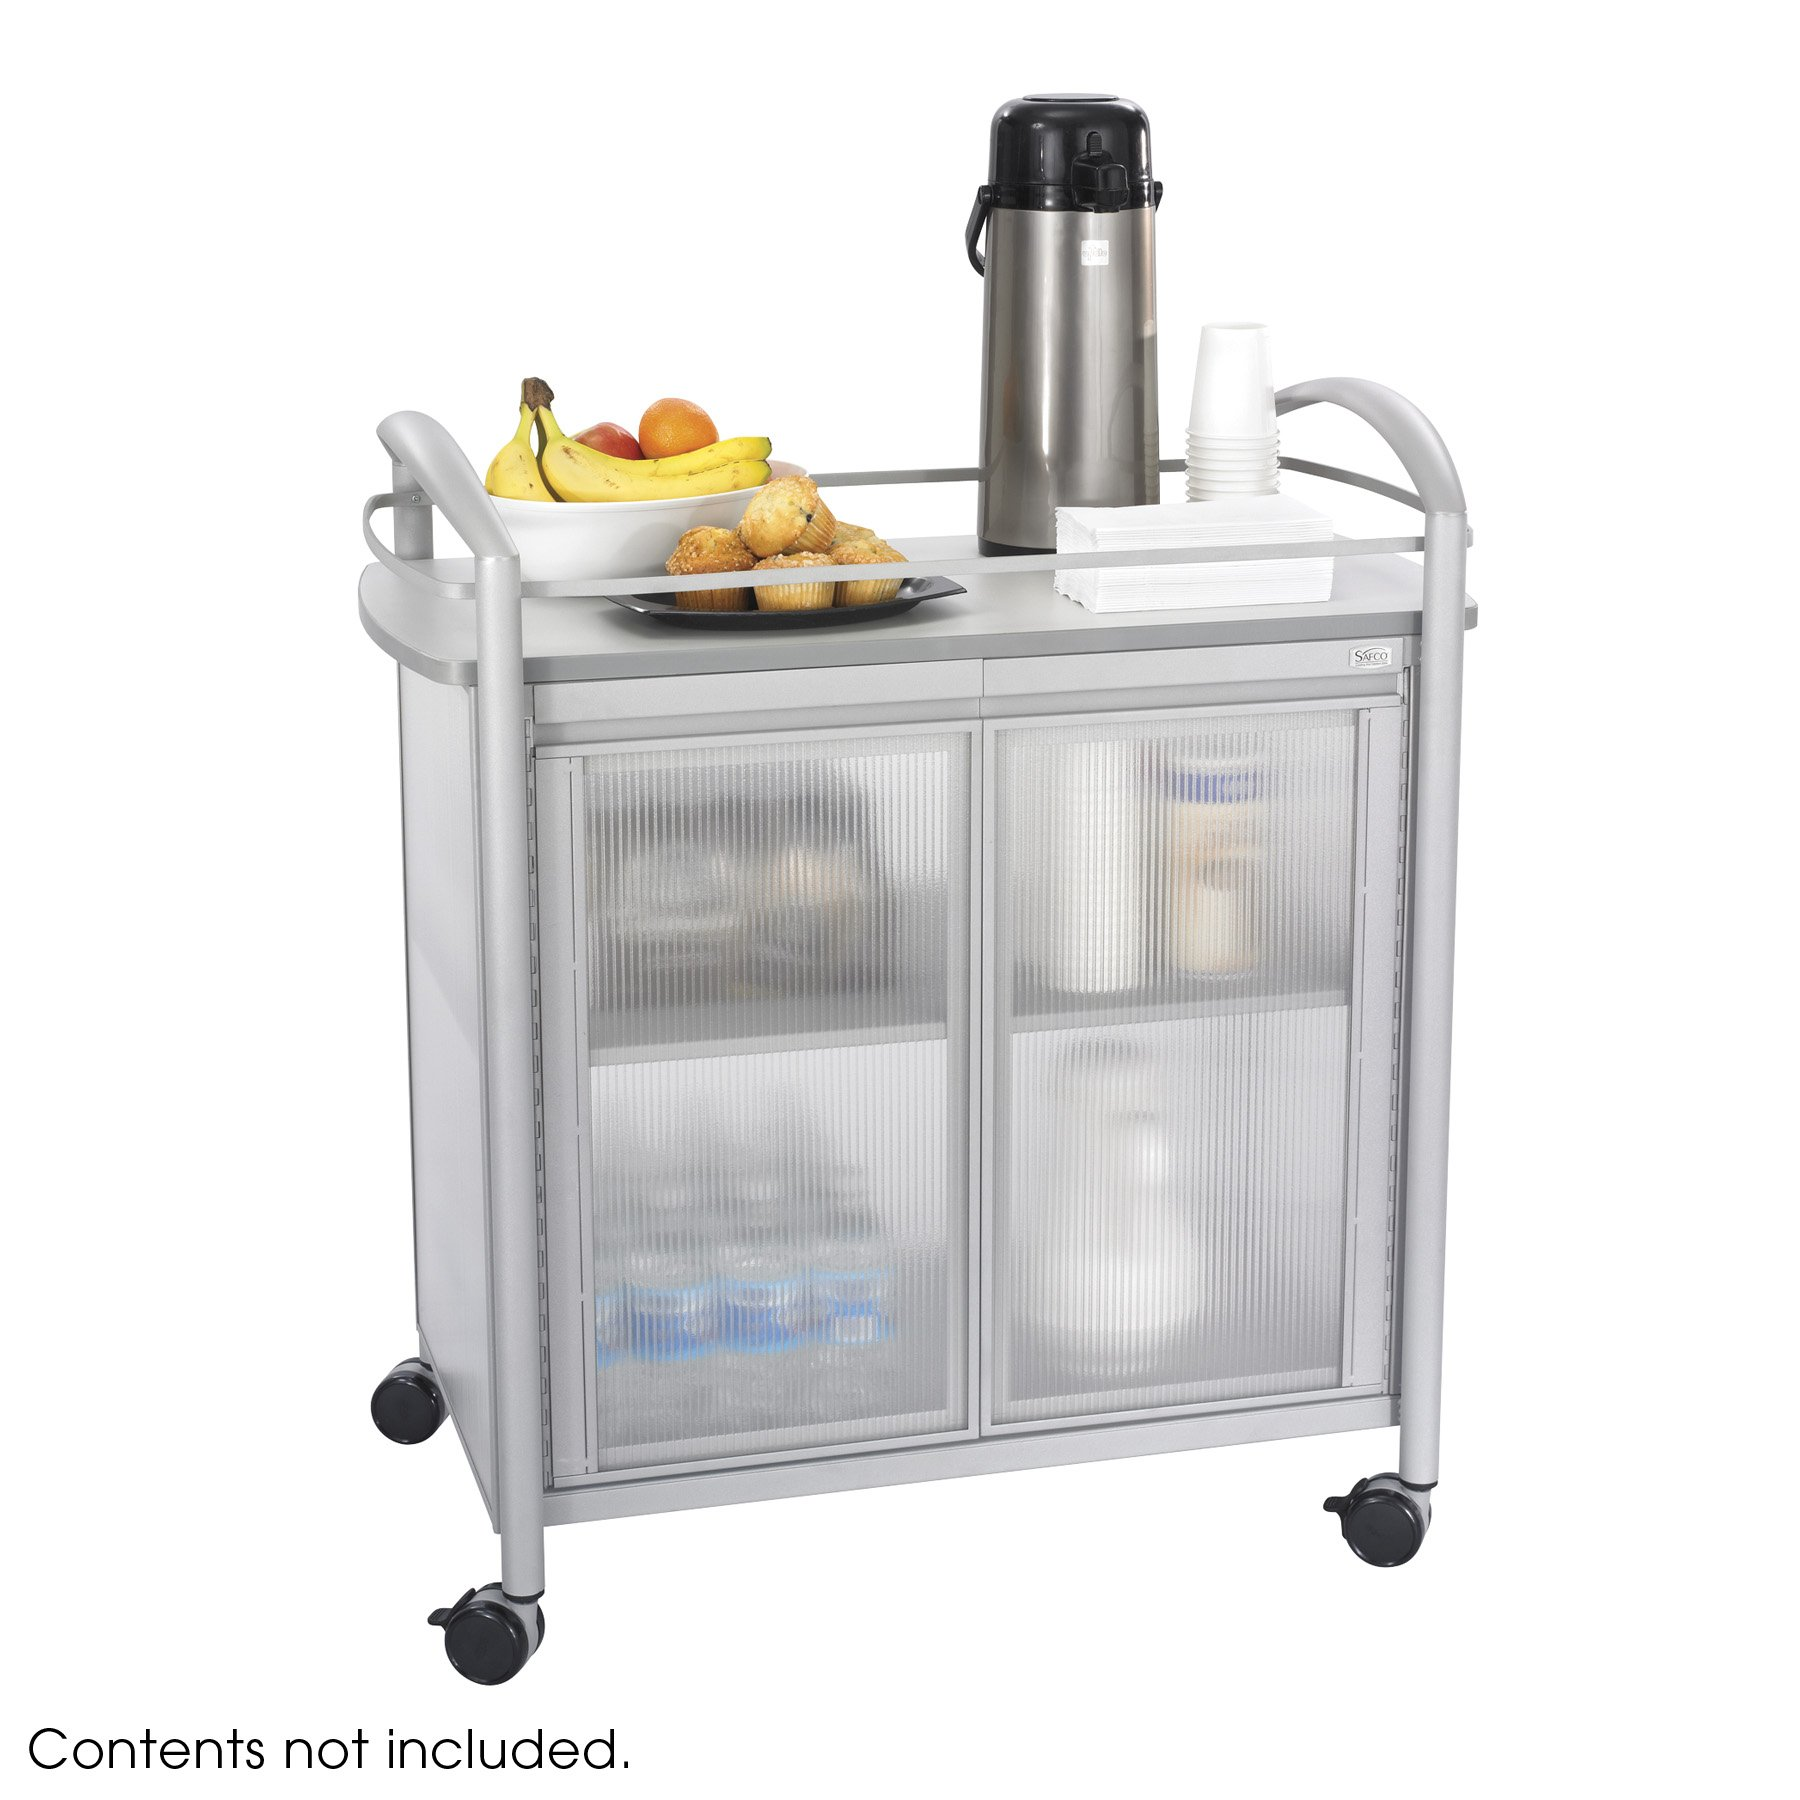 Safco Products 8966GR Impromptu Refreshment Hospitality Cart, Gray